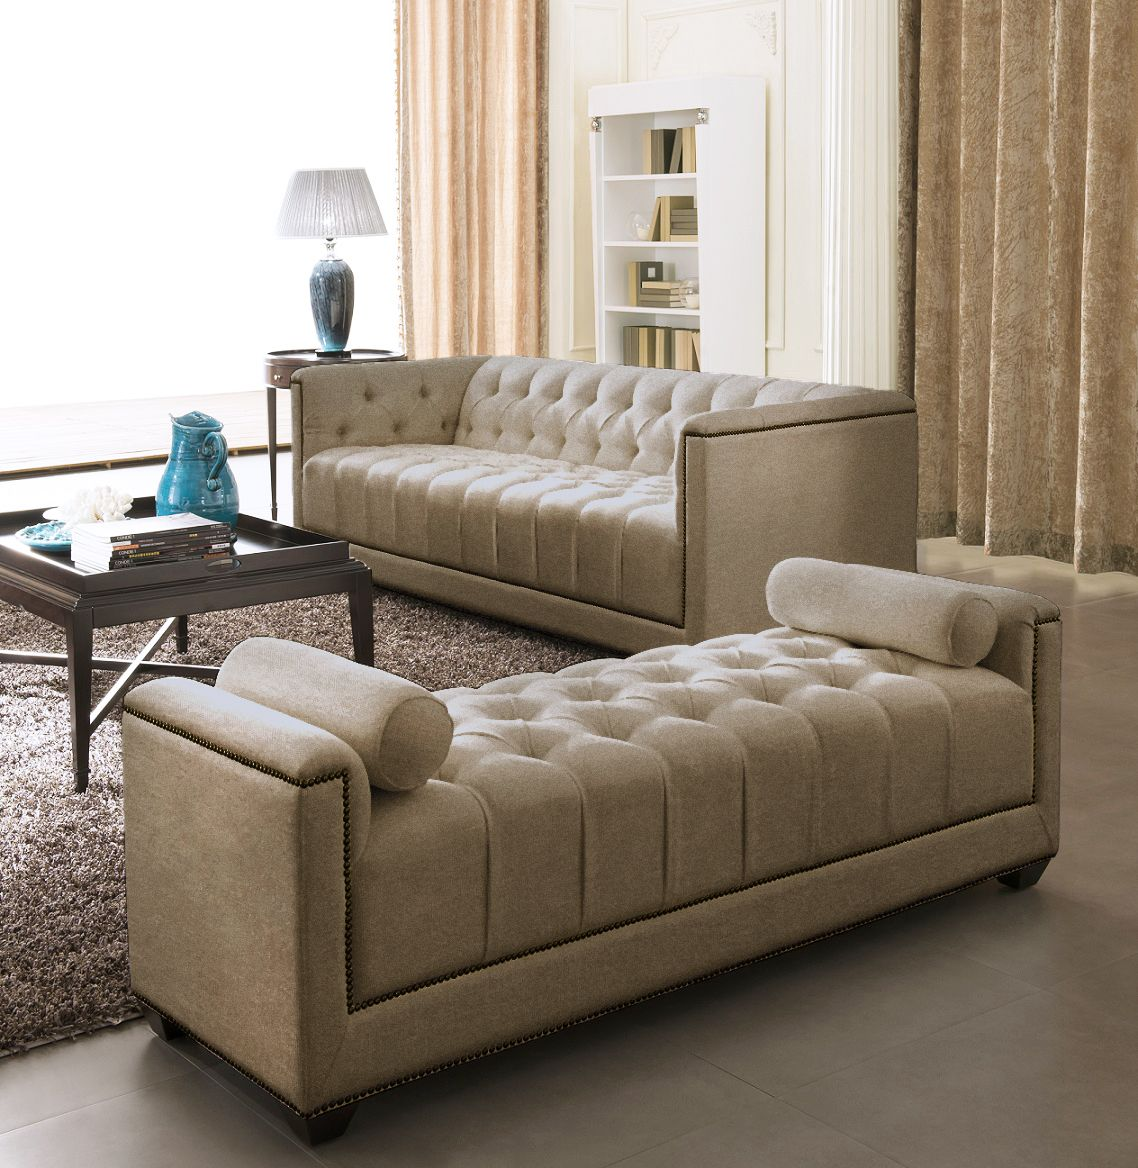 Fabric Sofa Set  Eden  Gold  Chester  Sofa set designs Living room sofa design Sofa furniture